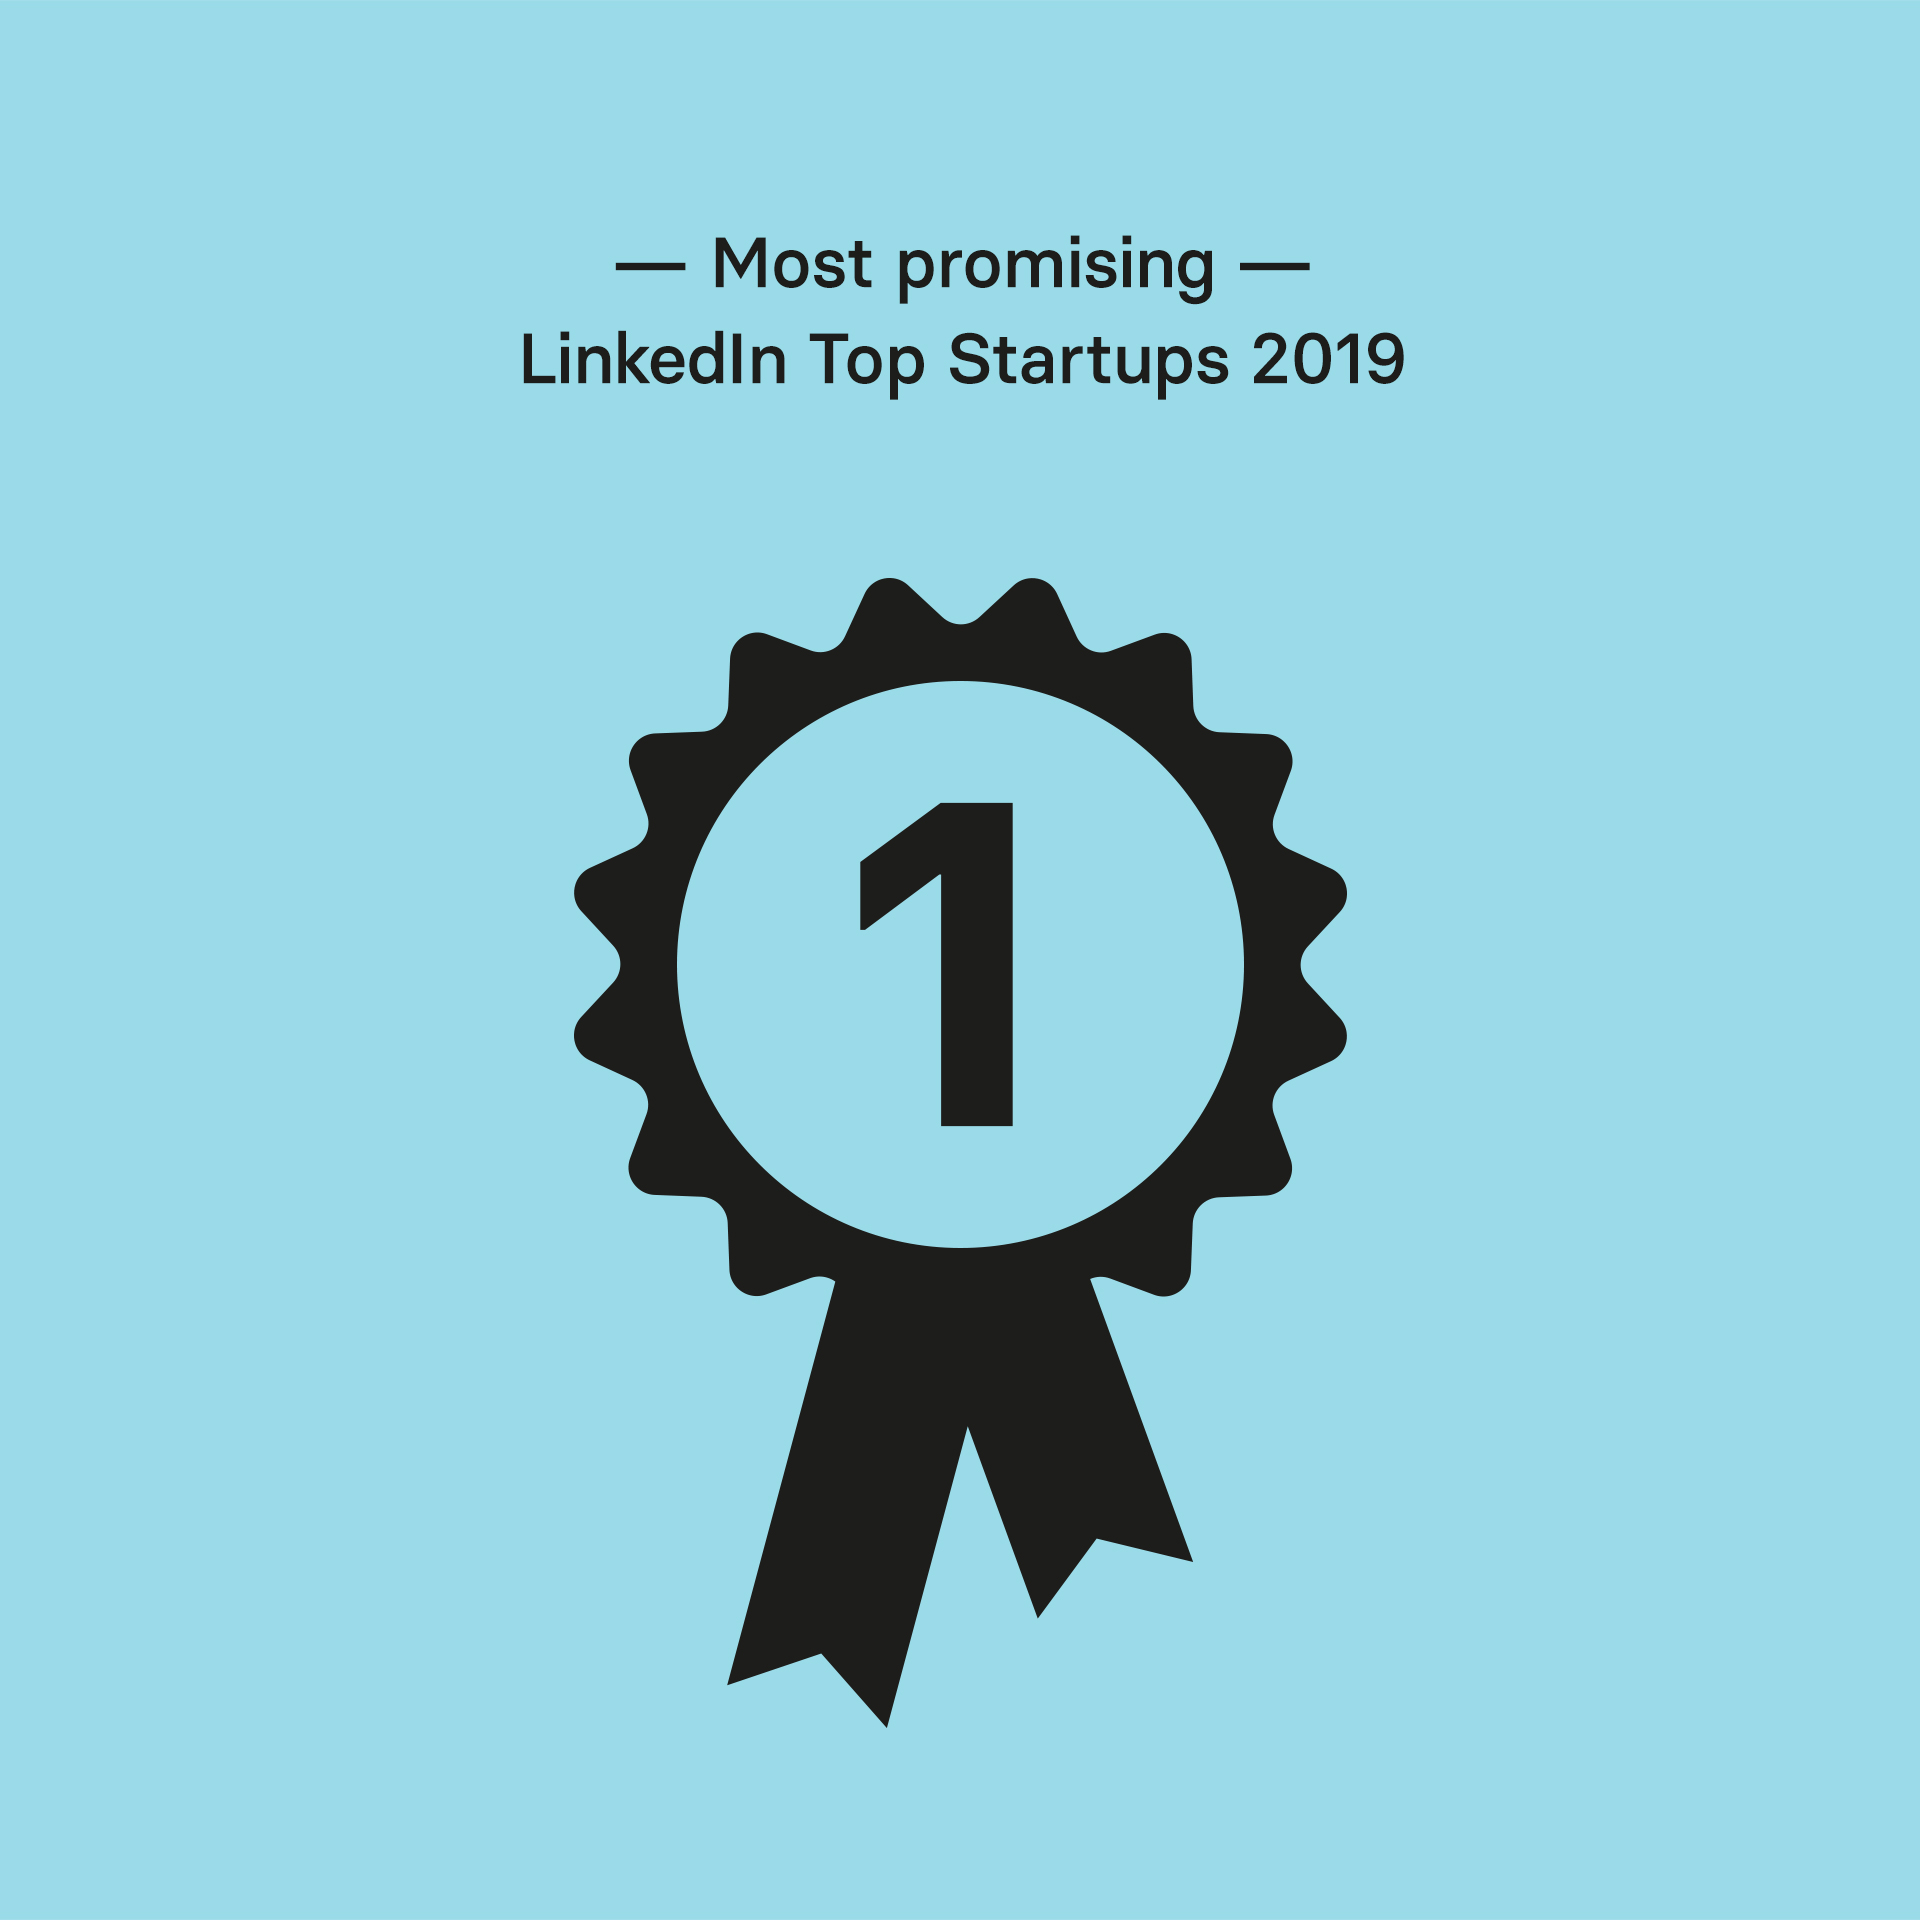 Lightyear Top LinkedIn Dutch Start-up 2019